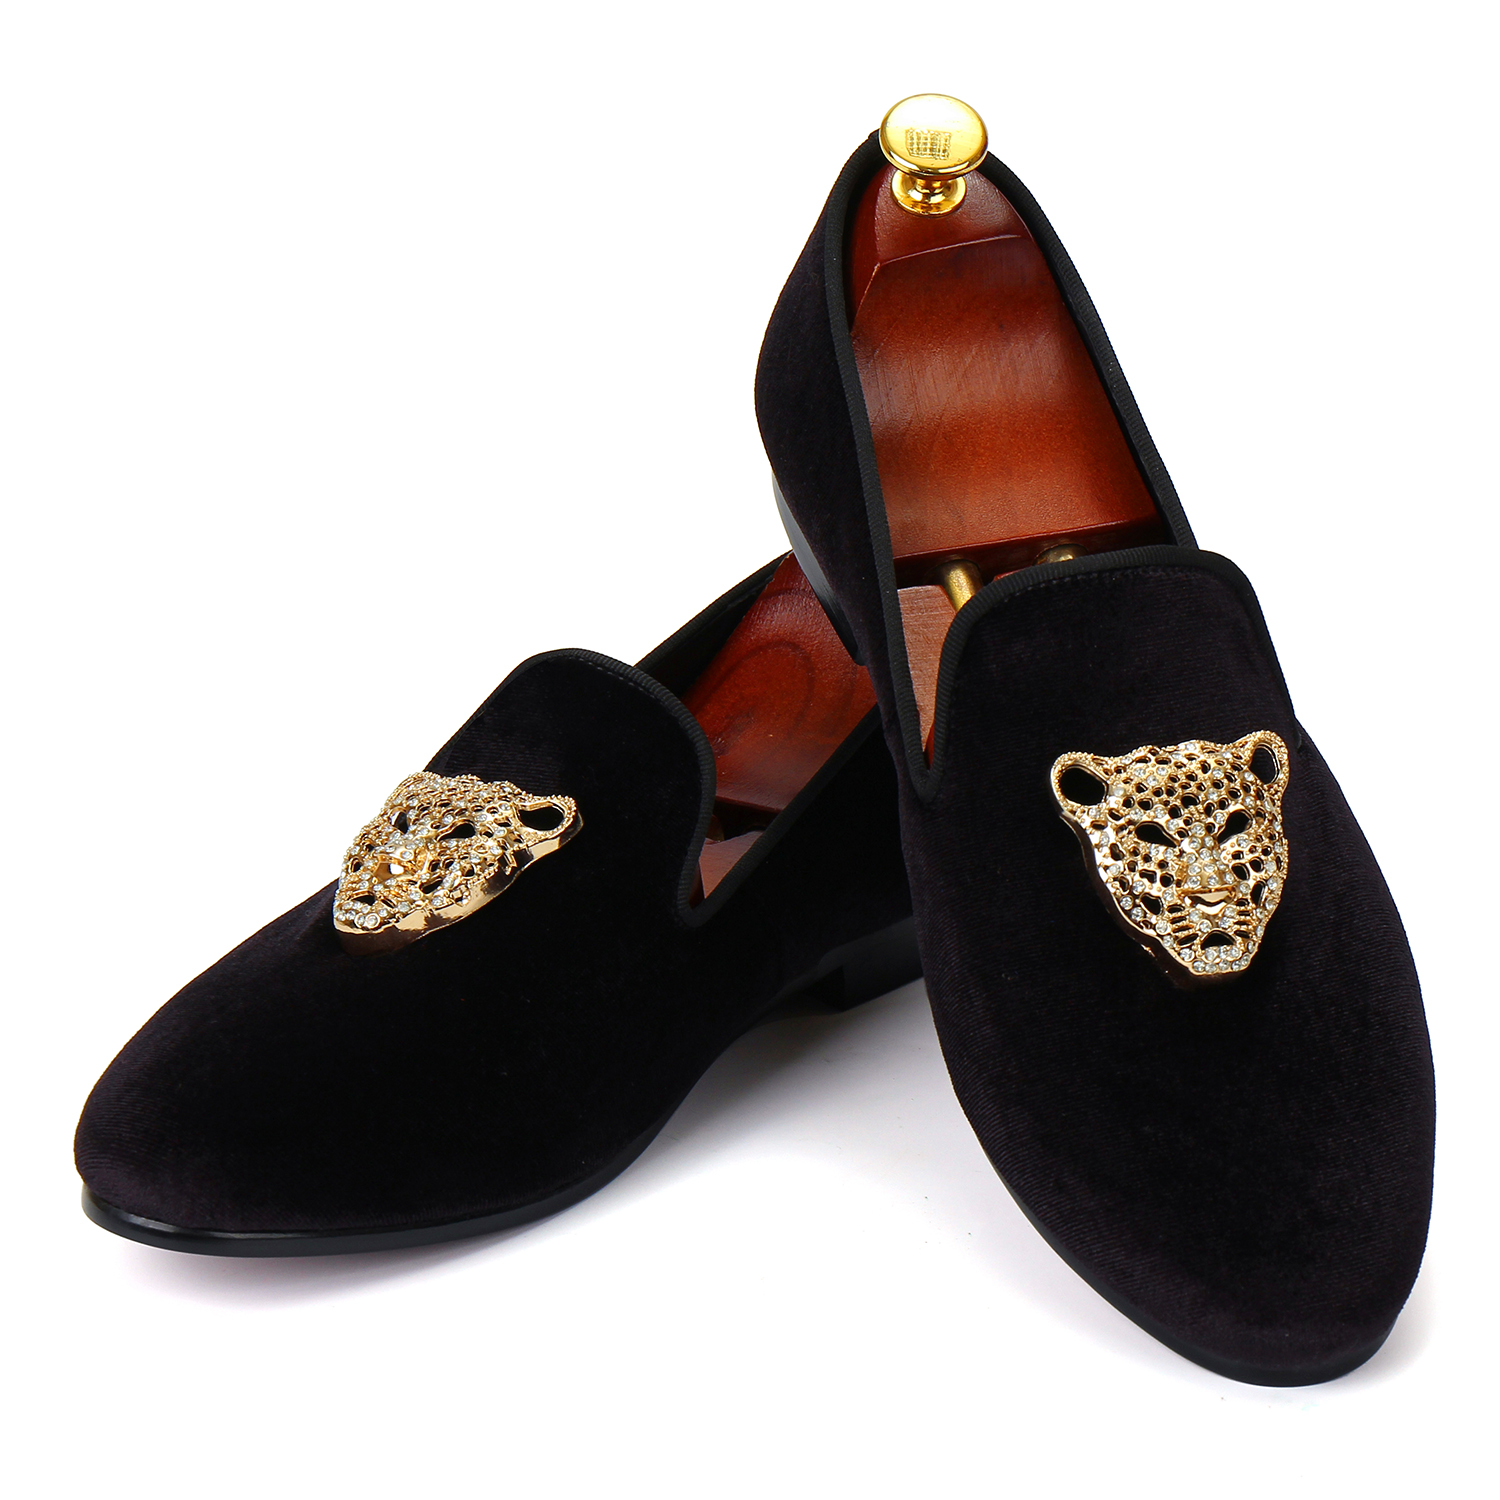 Harpelunde Men Velvet Loafer Shoes Animal Buckle Black Dress Shoes Size 6-14 : 91lifestyle